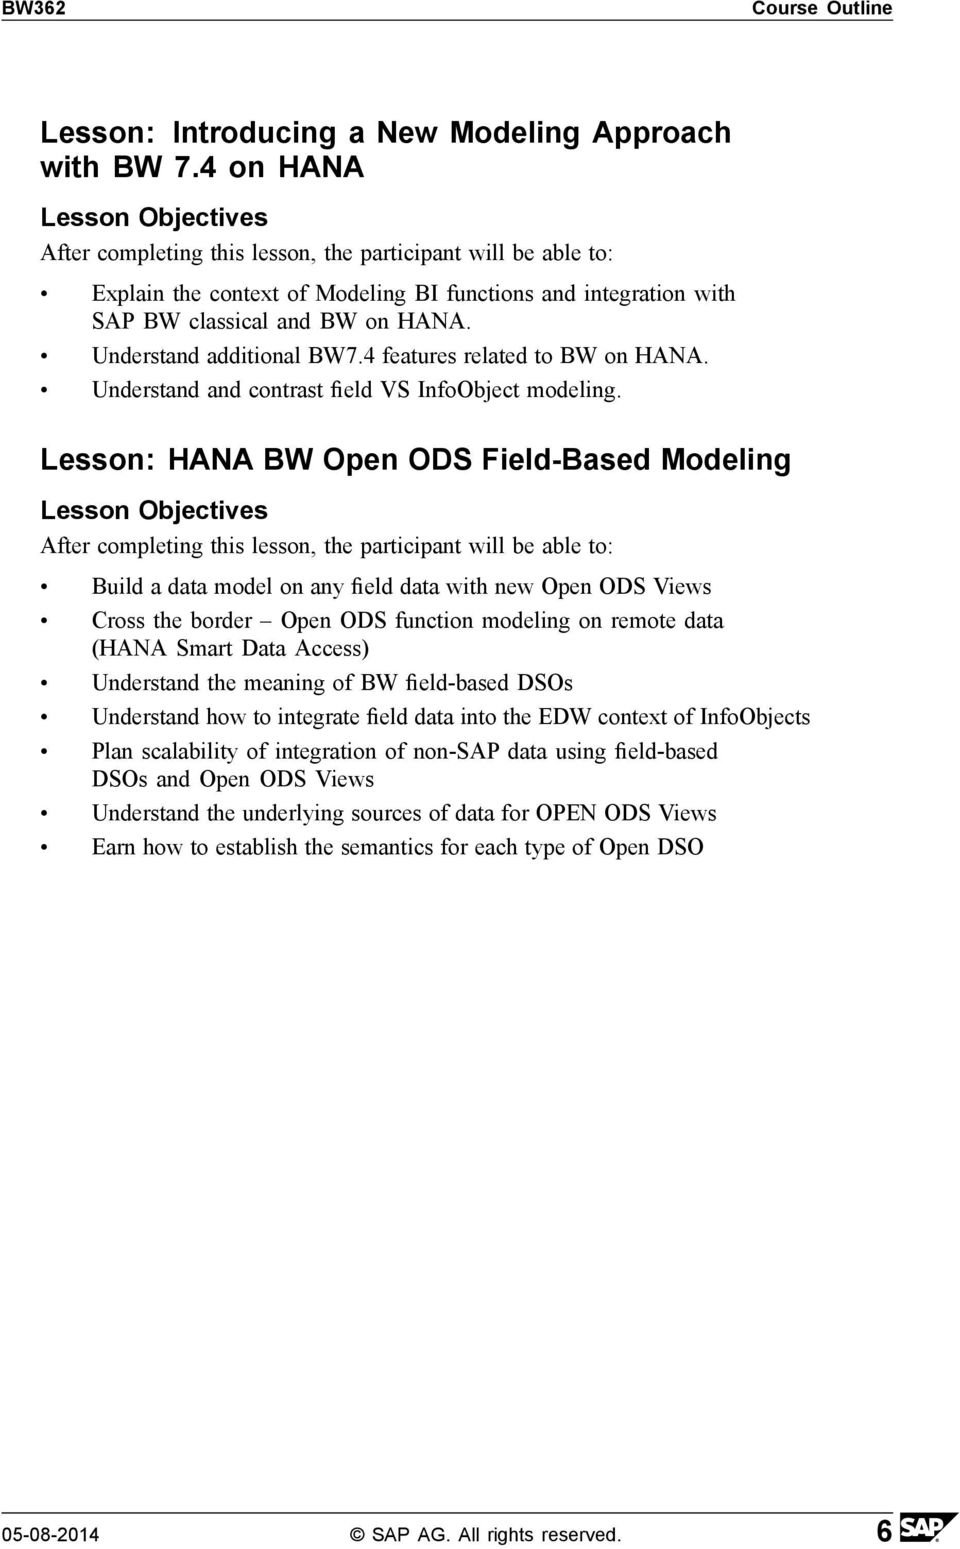 Lesson: HANA BW Open ODS Field-Based Modeling Build a data model on any field data with new Open ODS Views Cross the border Open ODS function modeling on remote data (HANA Smart Data Access)